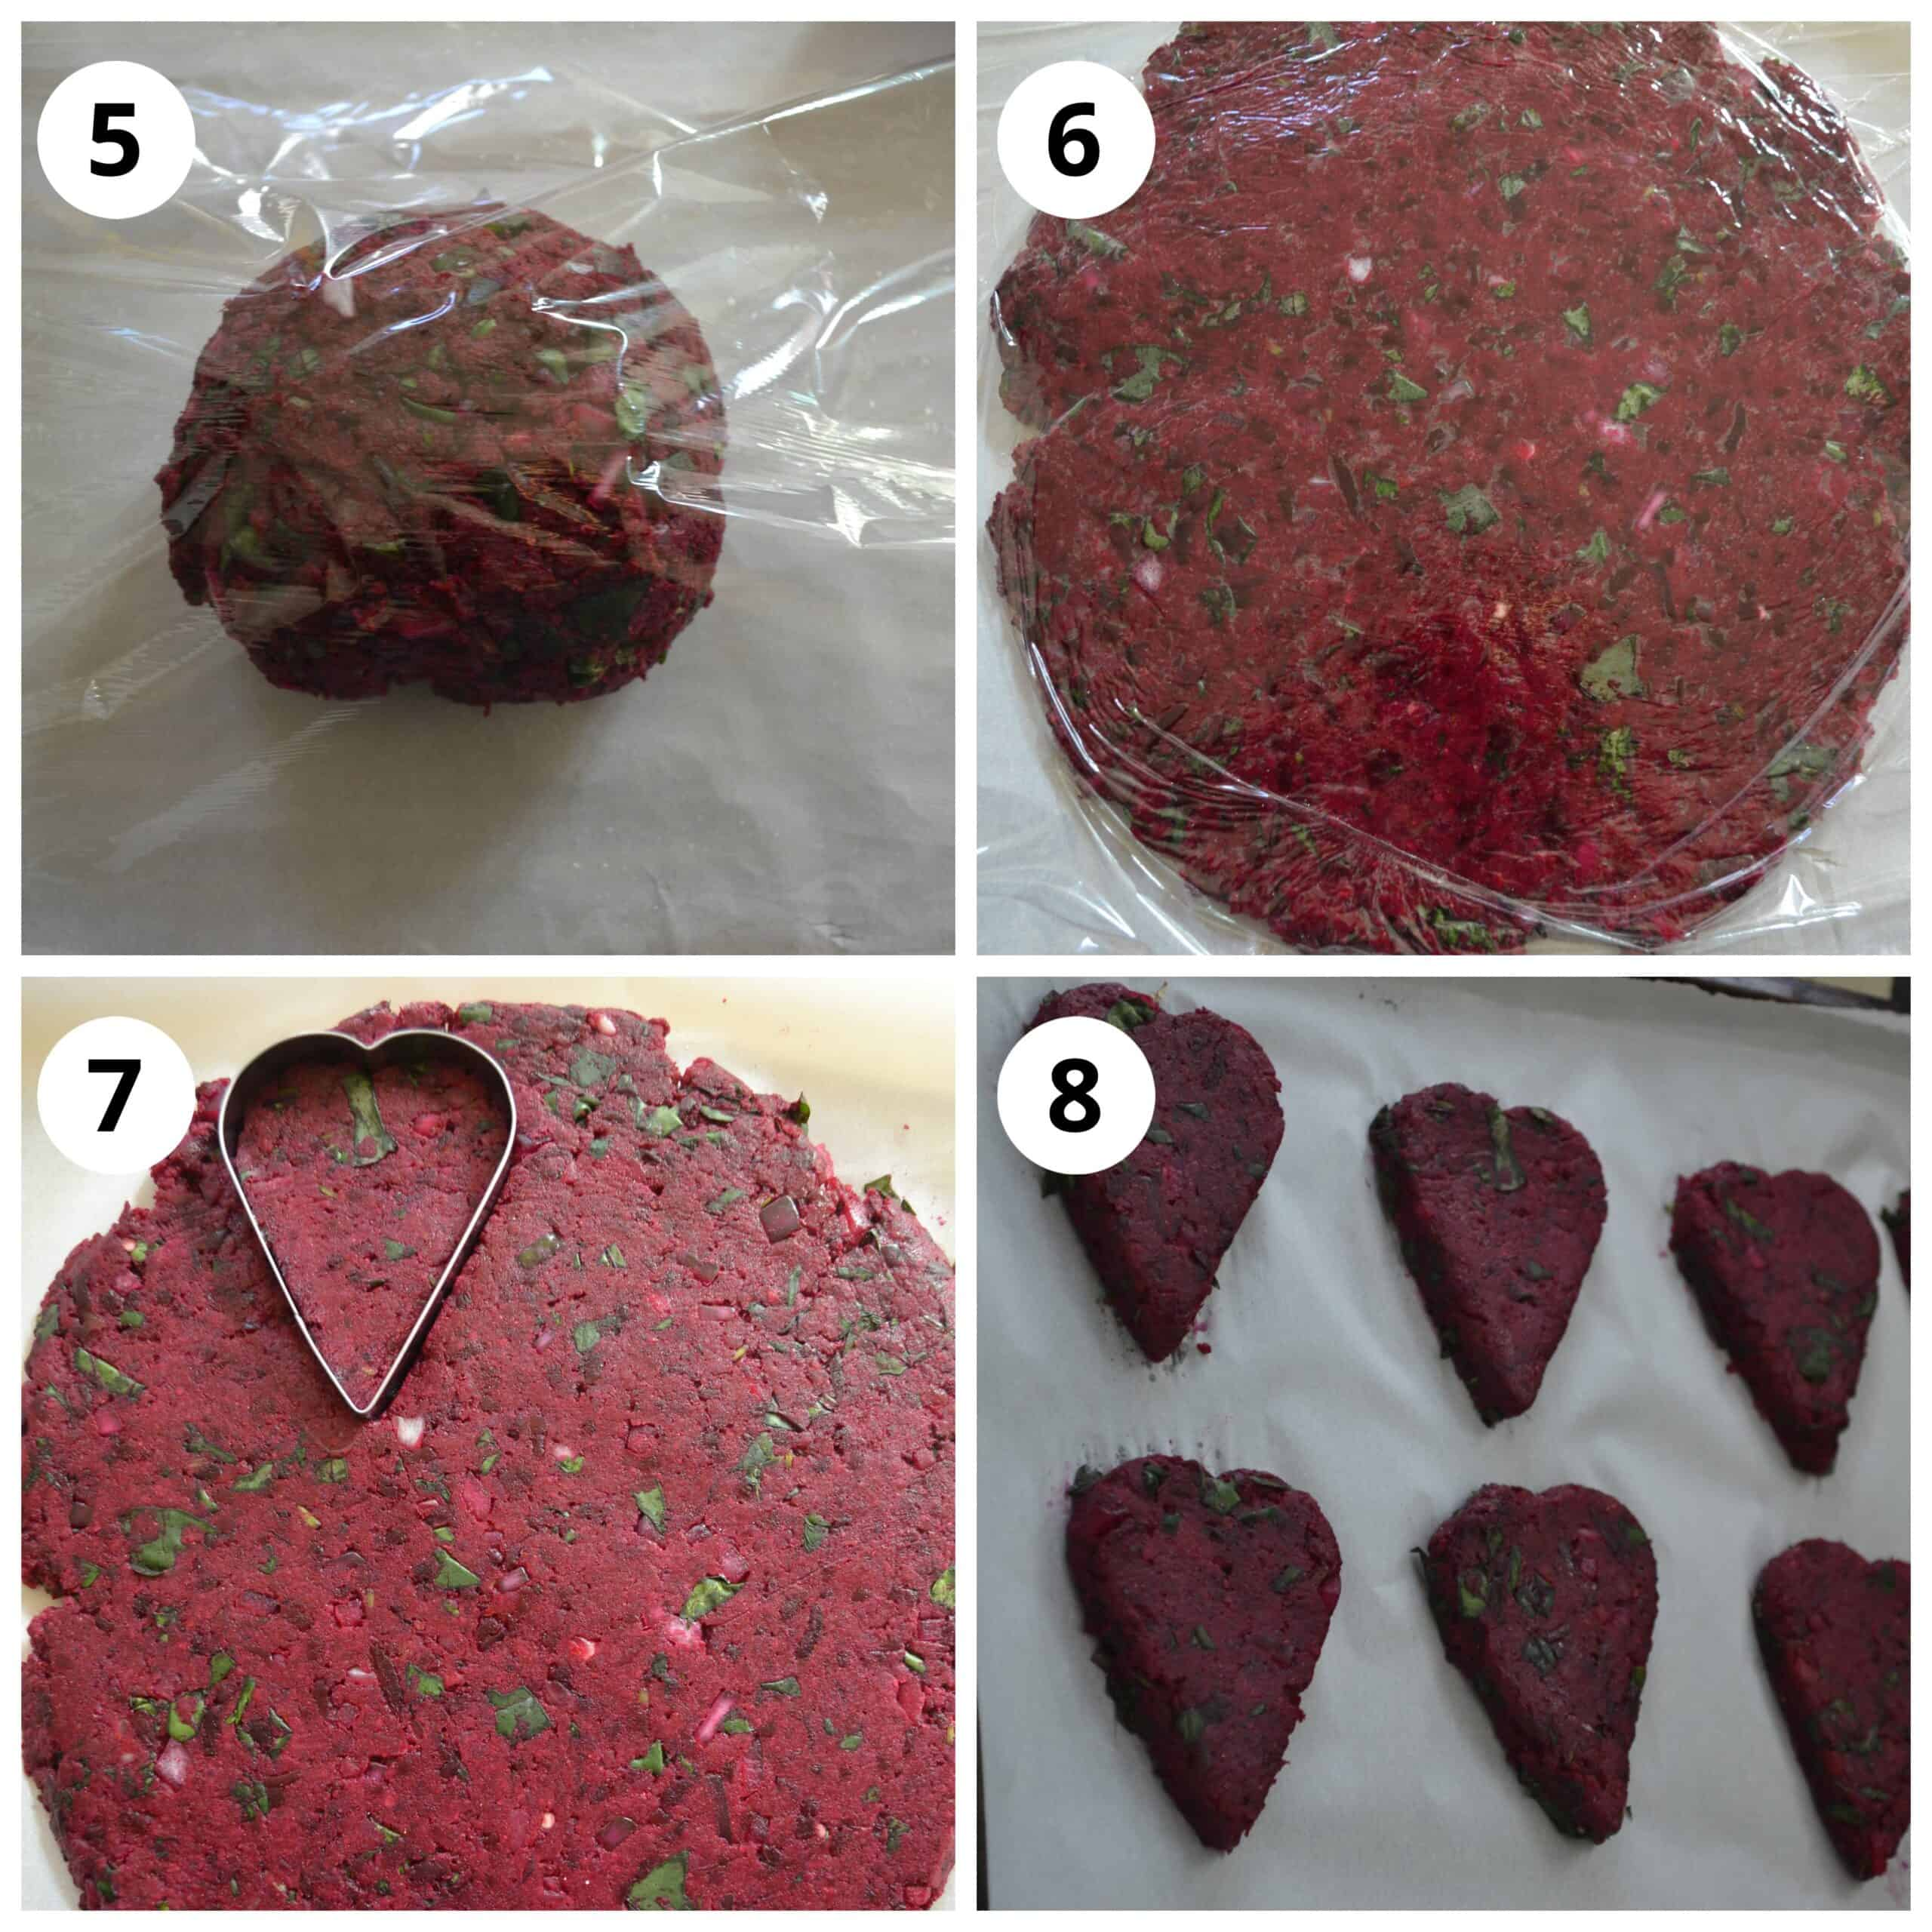 Steps for shaping Beetroot Cutlet using heart shaped cookie cutter